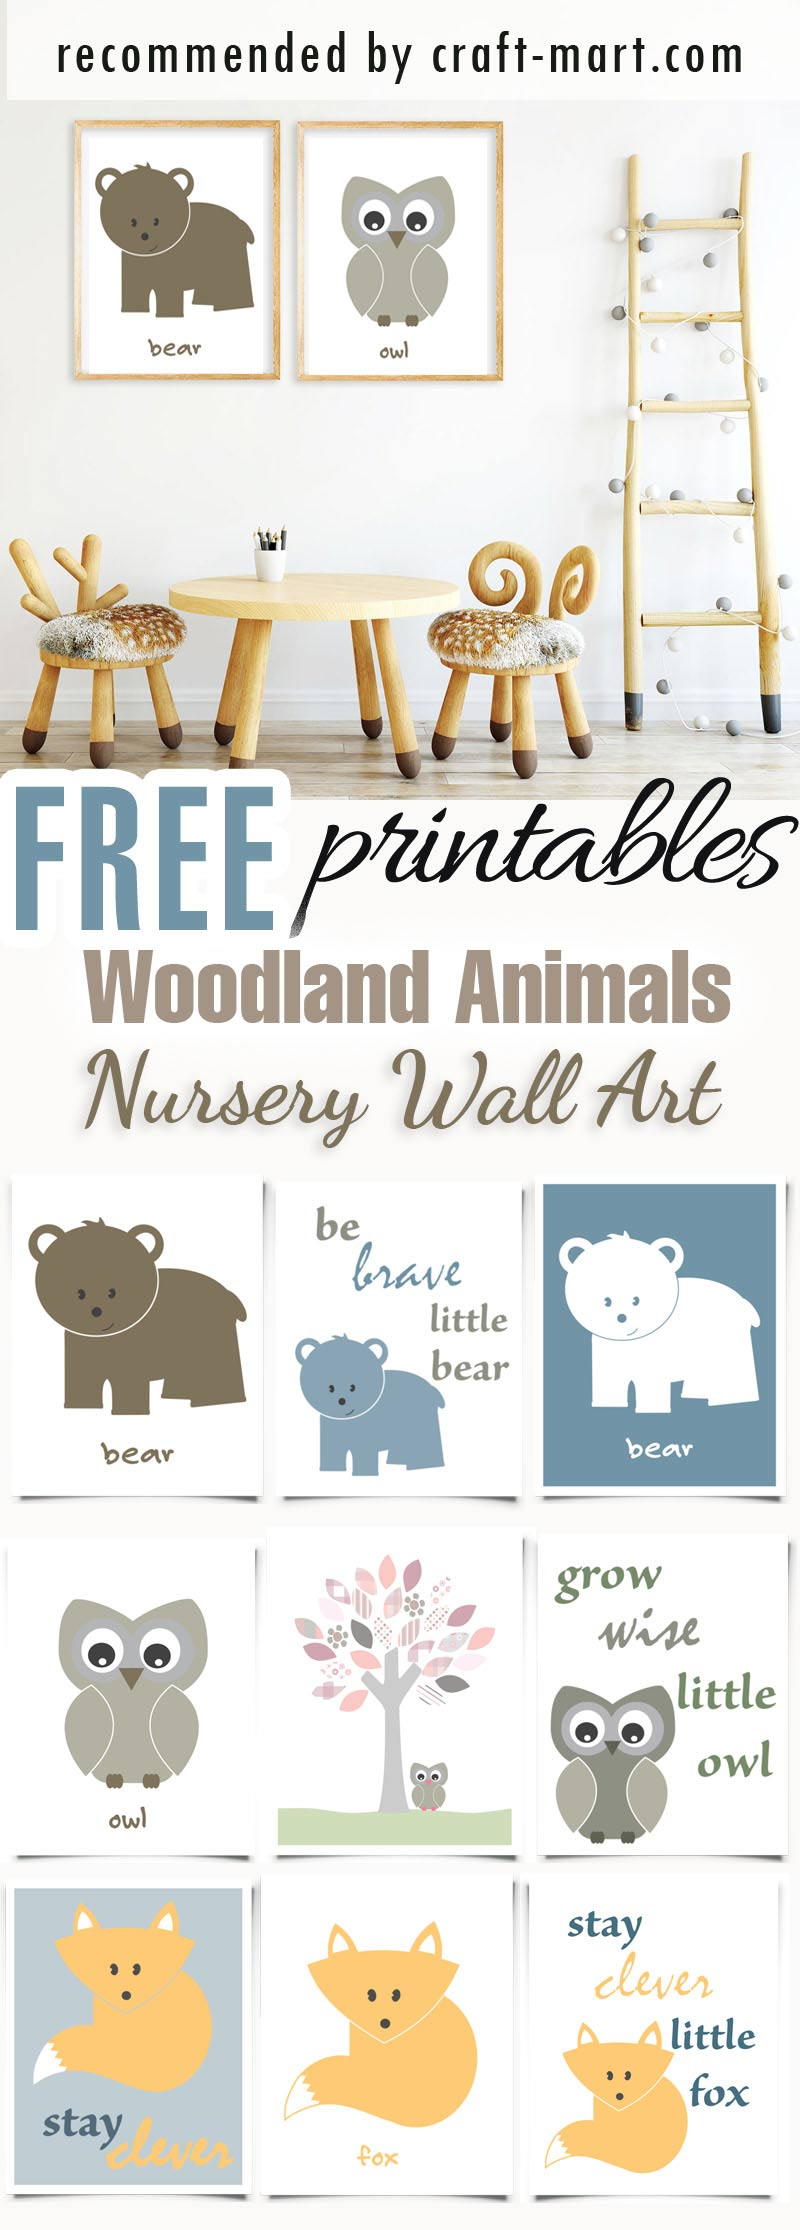 Woodlands Nursery Theme Animals - free printables #freeprintables #freenurseryprintables #freenurserywallart #cutenurseryprints #woodlandanilsnurseryprintables #bearnurseryprintables #owlnurseryprintables #foxnurseryprintables #freenurseryprints